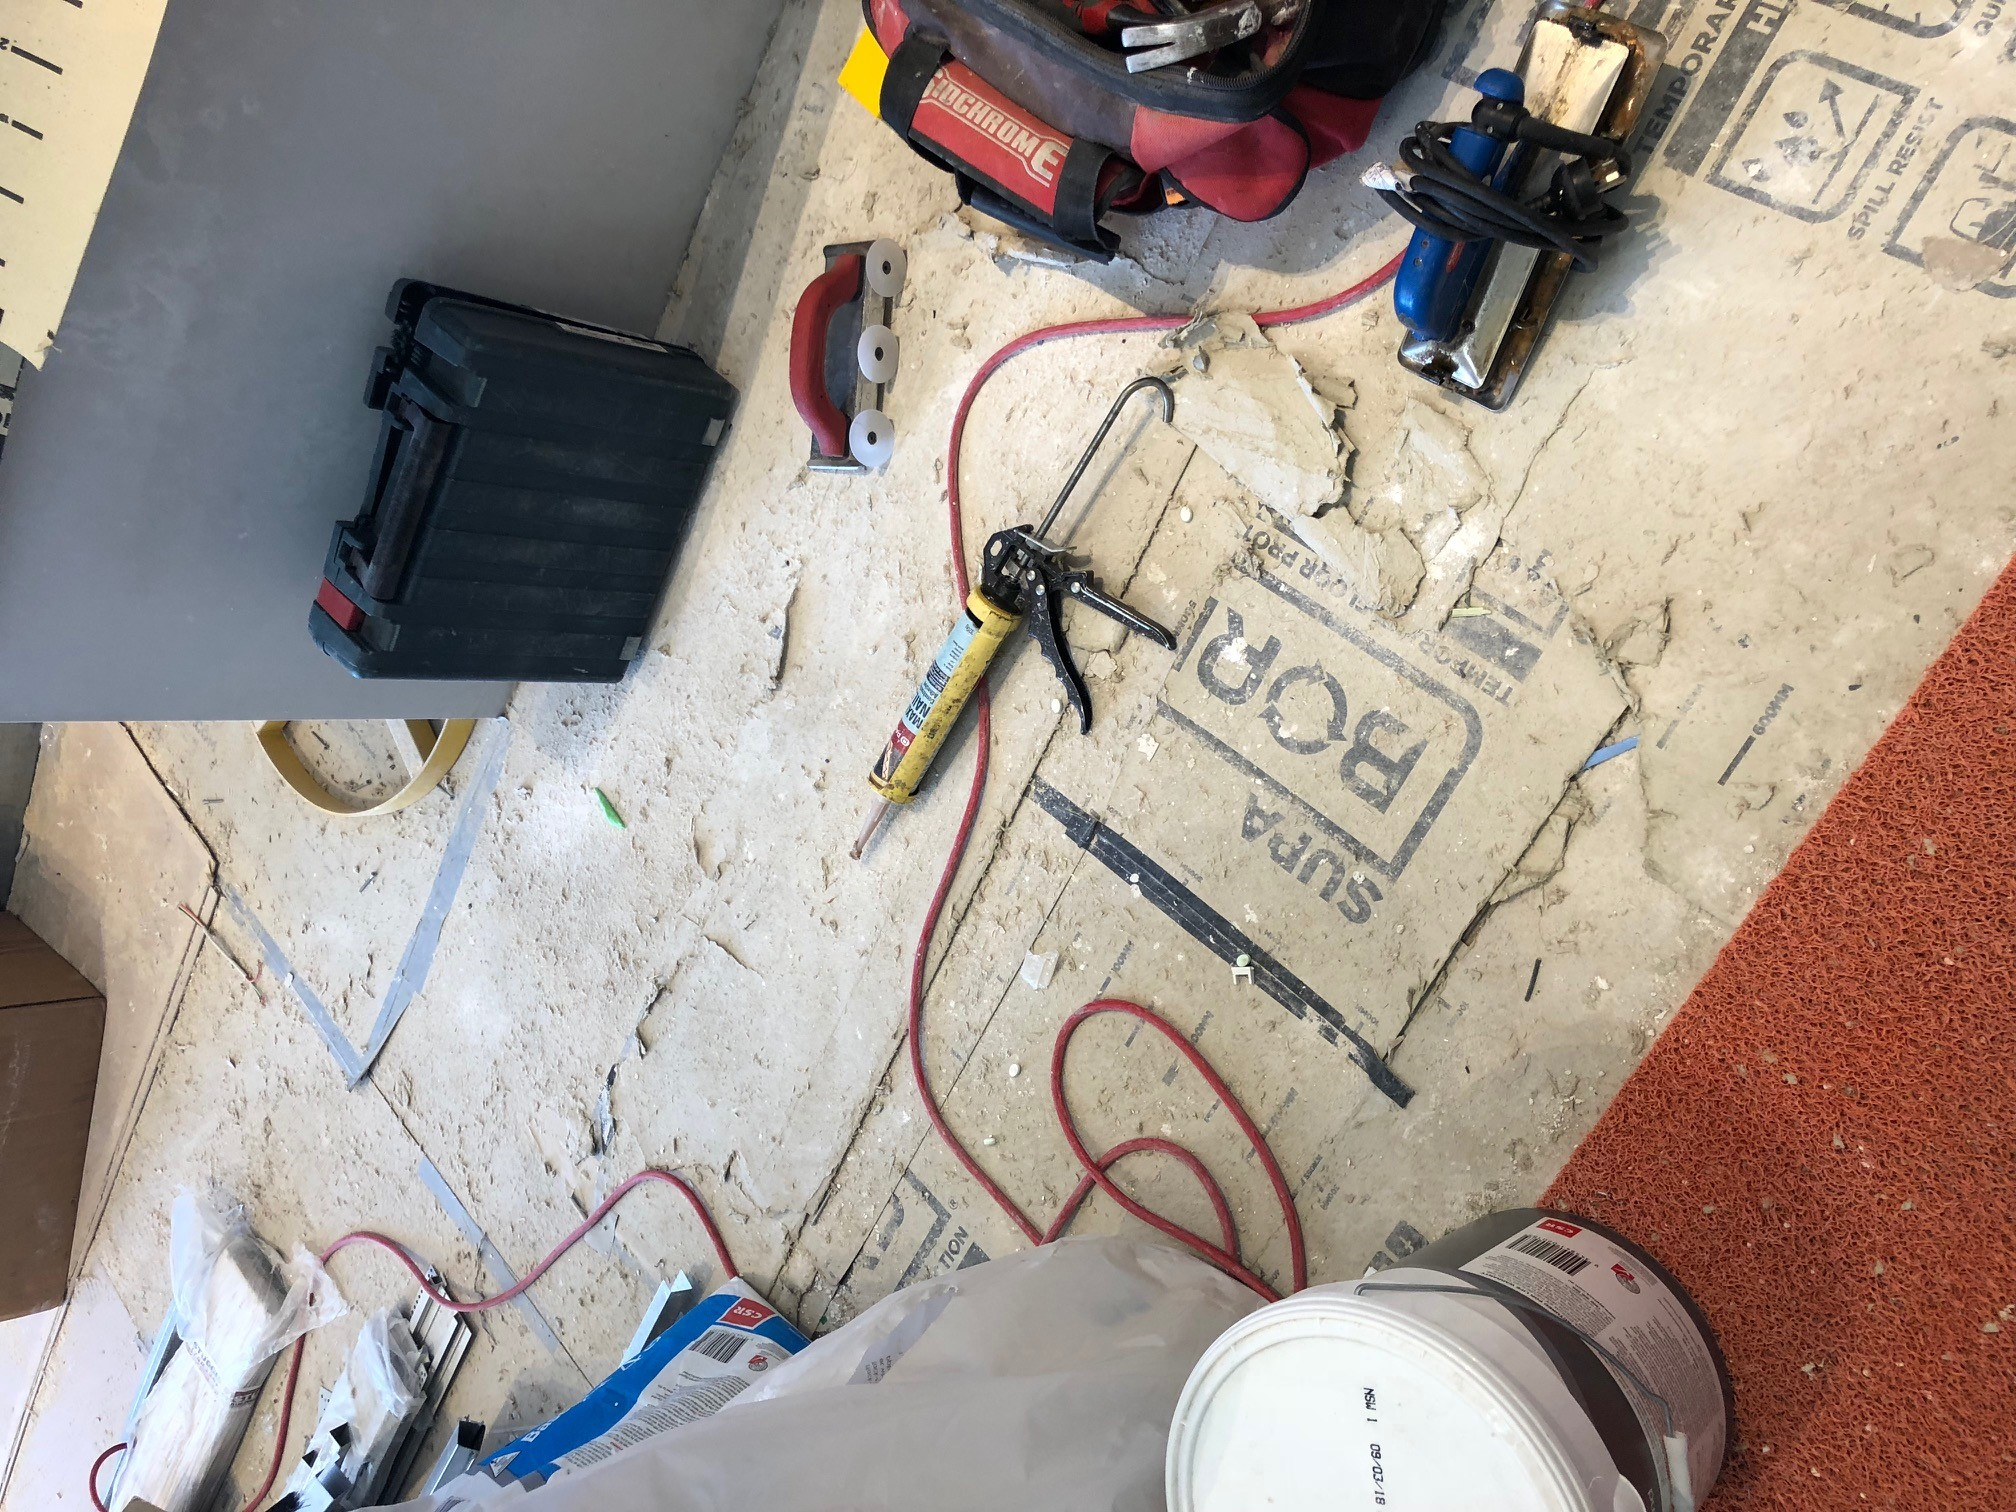 Generic surface protection not able to handle building site conditions